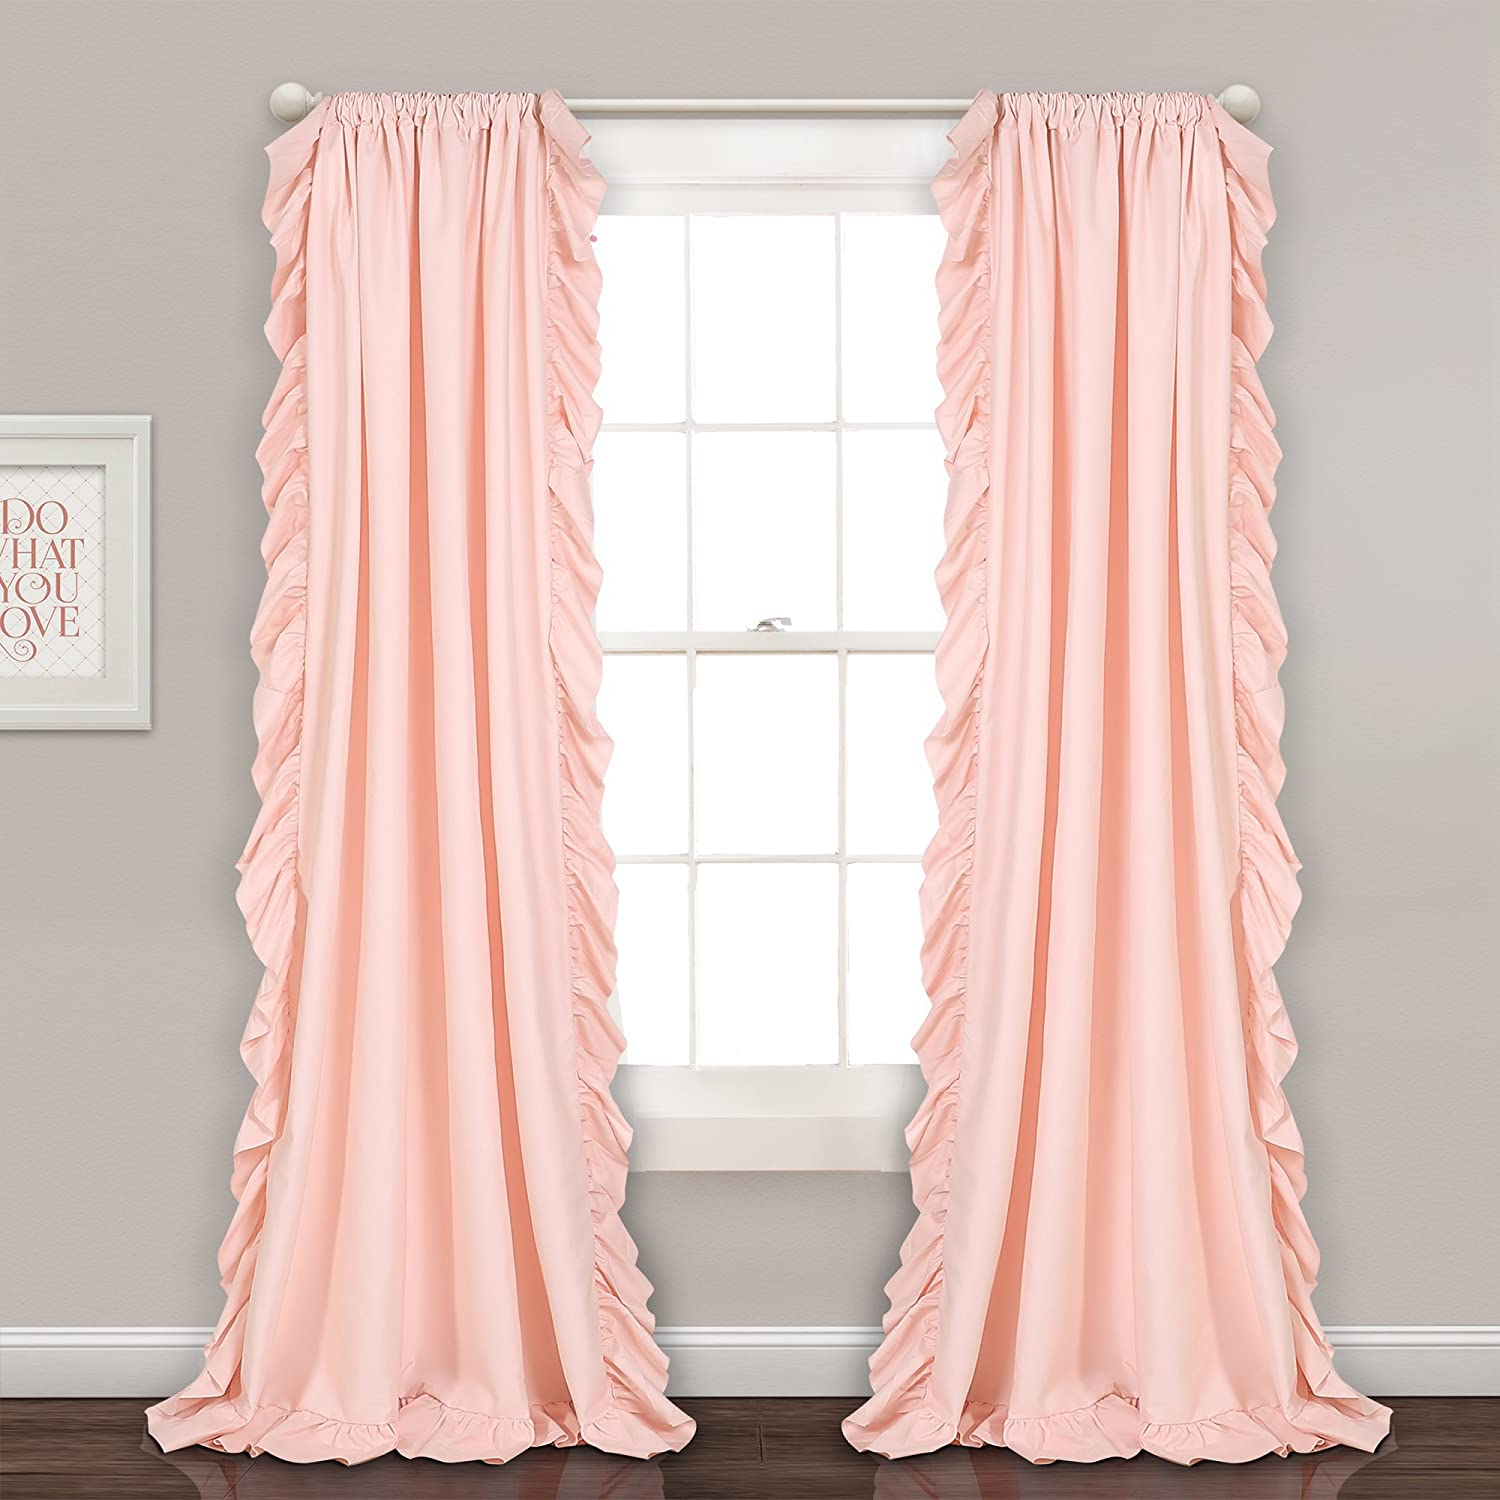 bluesh Pink 95 L Panel Pair Lush Decor Reyna Ivory Window Panel Curtain Set for Living, Dining Room, Bedroom (Pair), 108  x 54 L